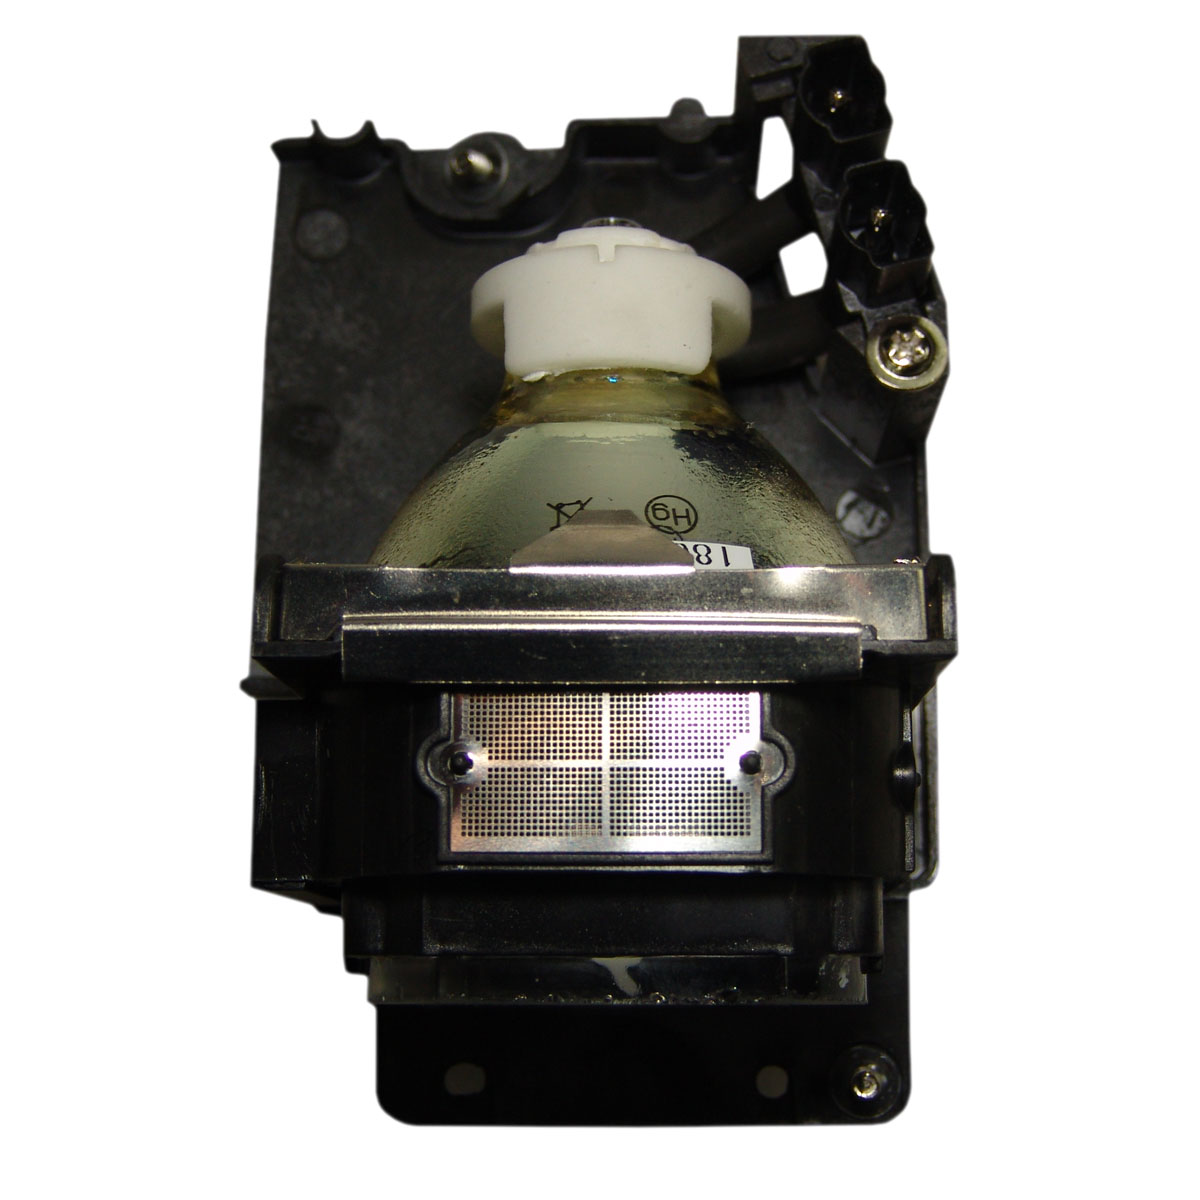 Power by Ushio IET Lamps with 1 Year Warranty Genuine OEM Replacement Lamp for MEGAPOWER ML176 Projector